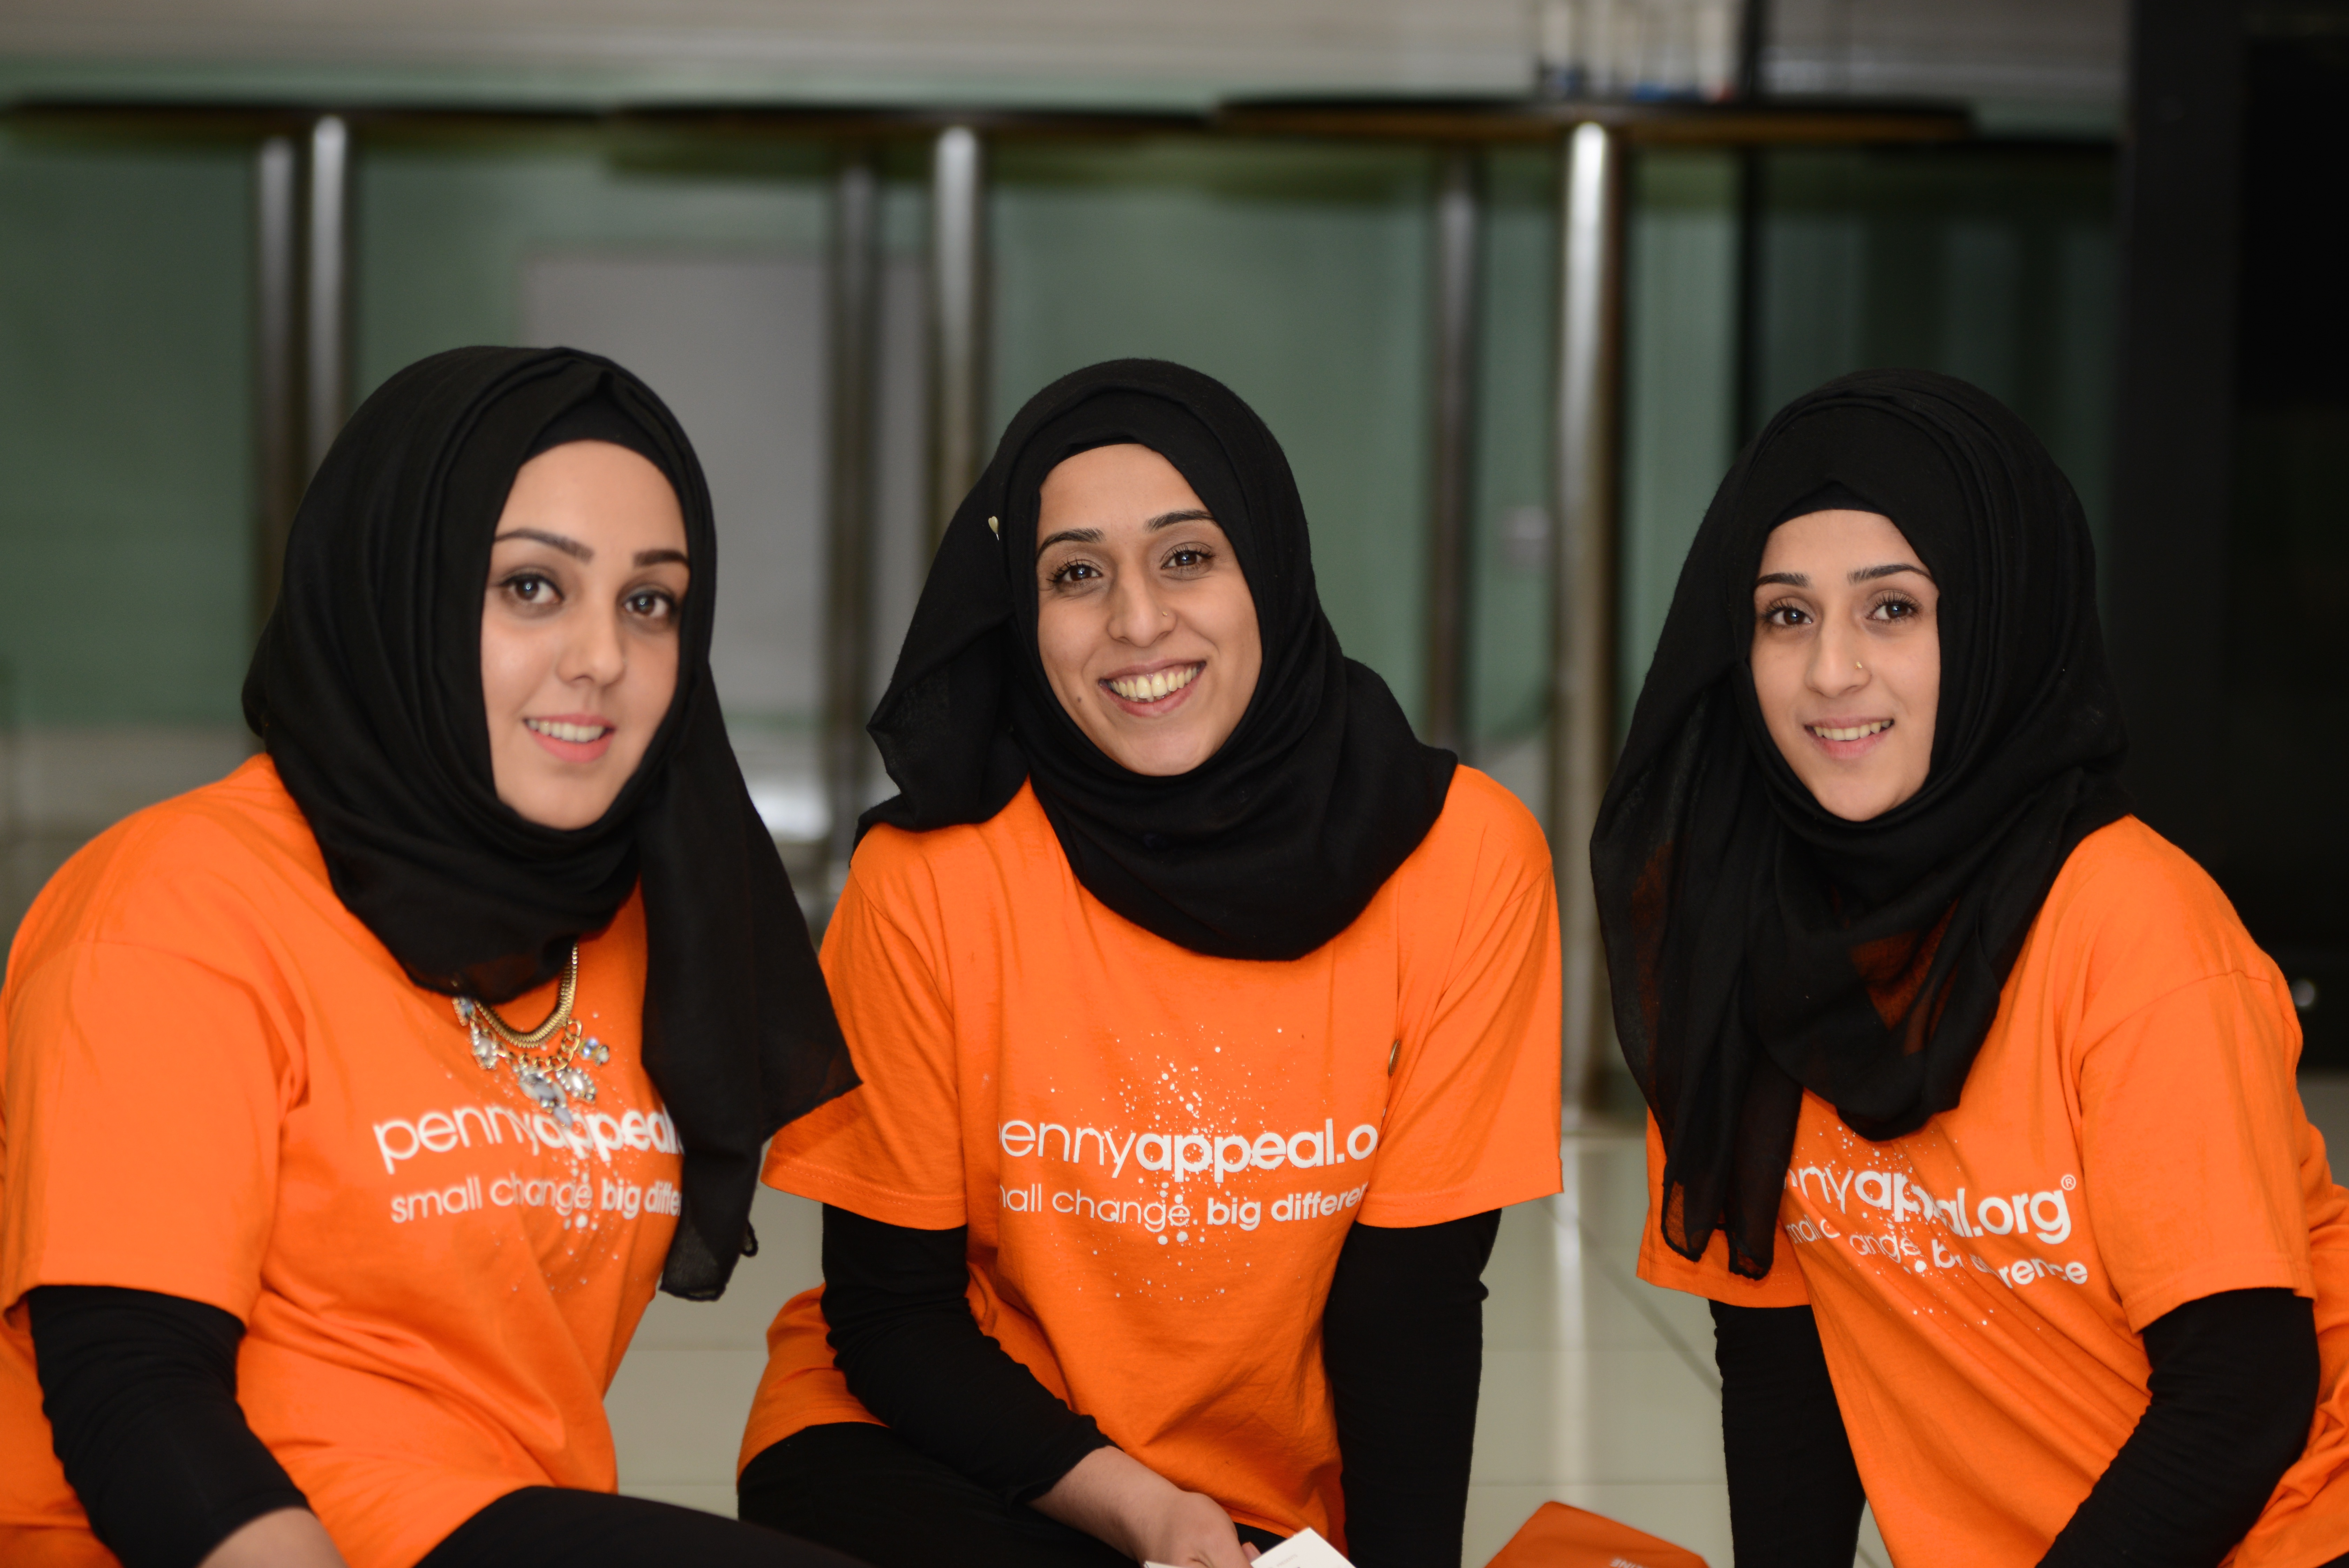 British Muslim community raise over £1 million to help orphans worldwide